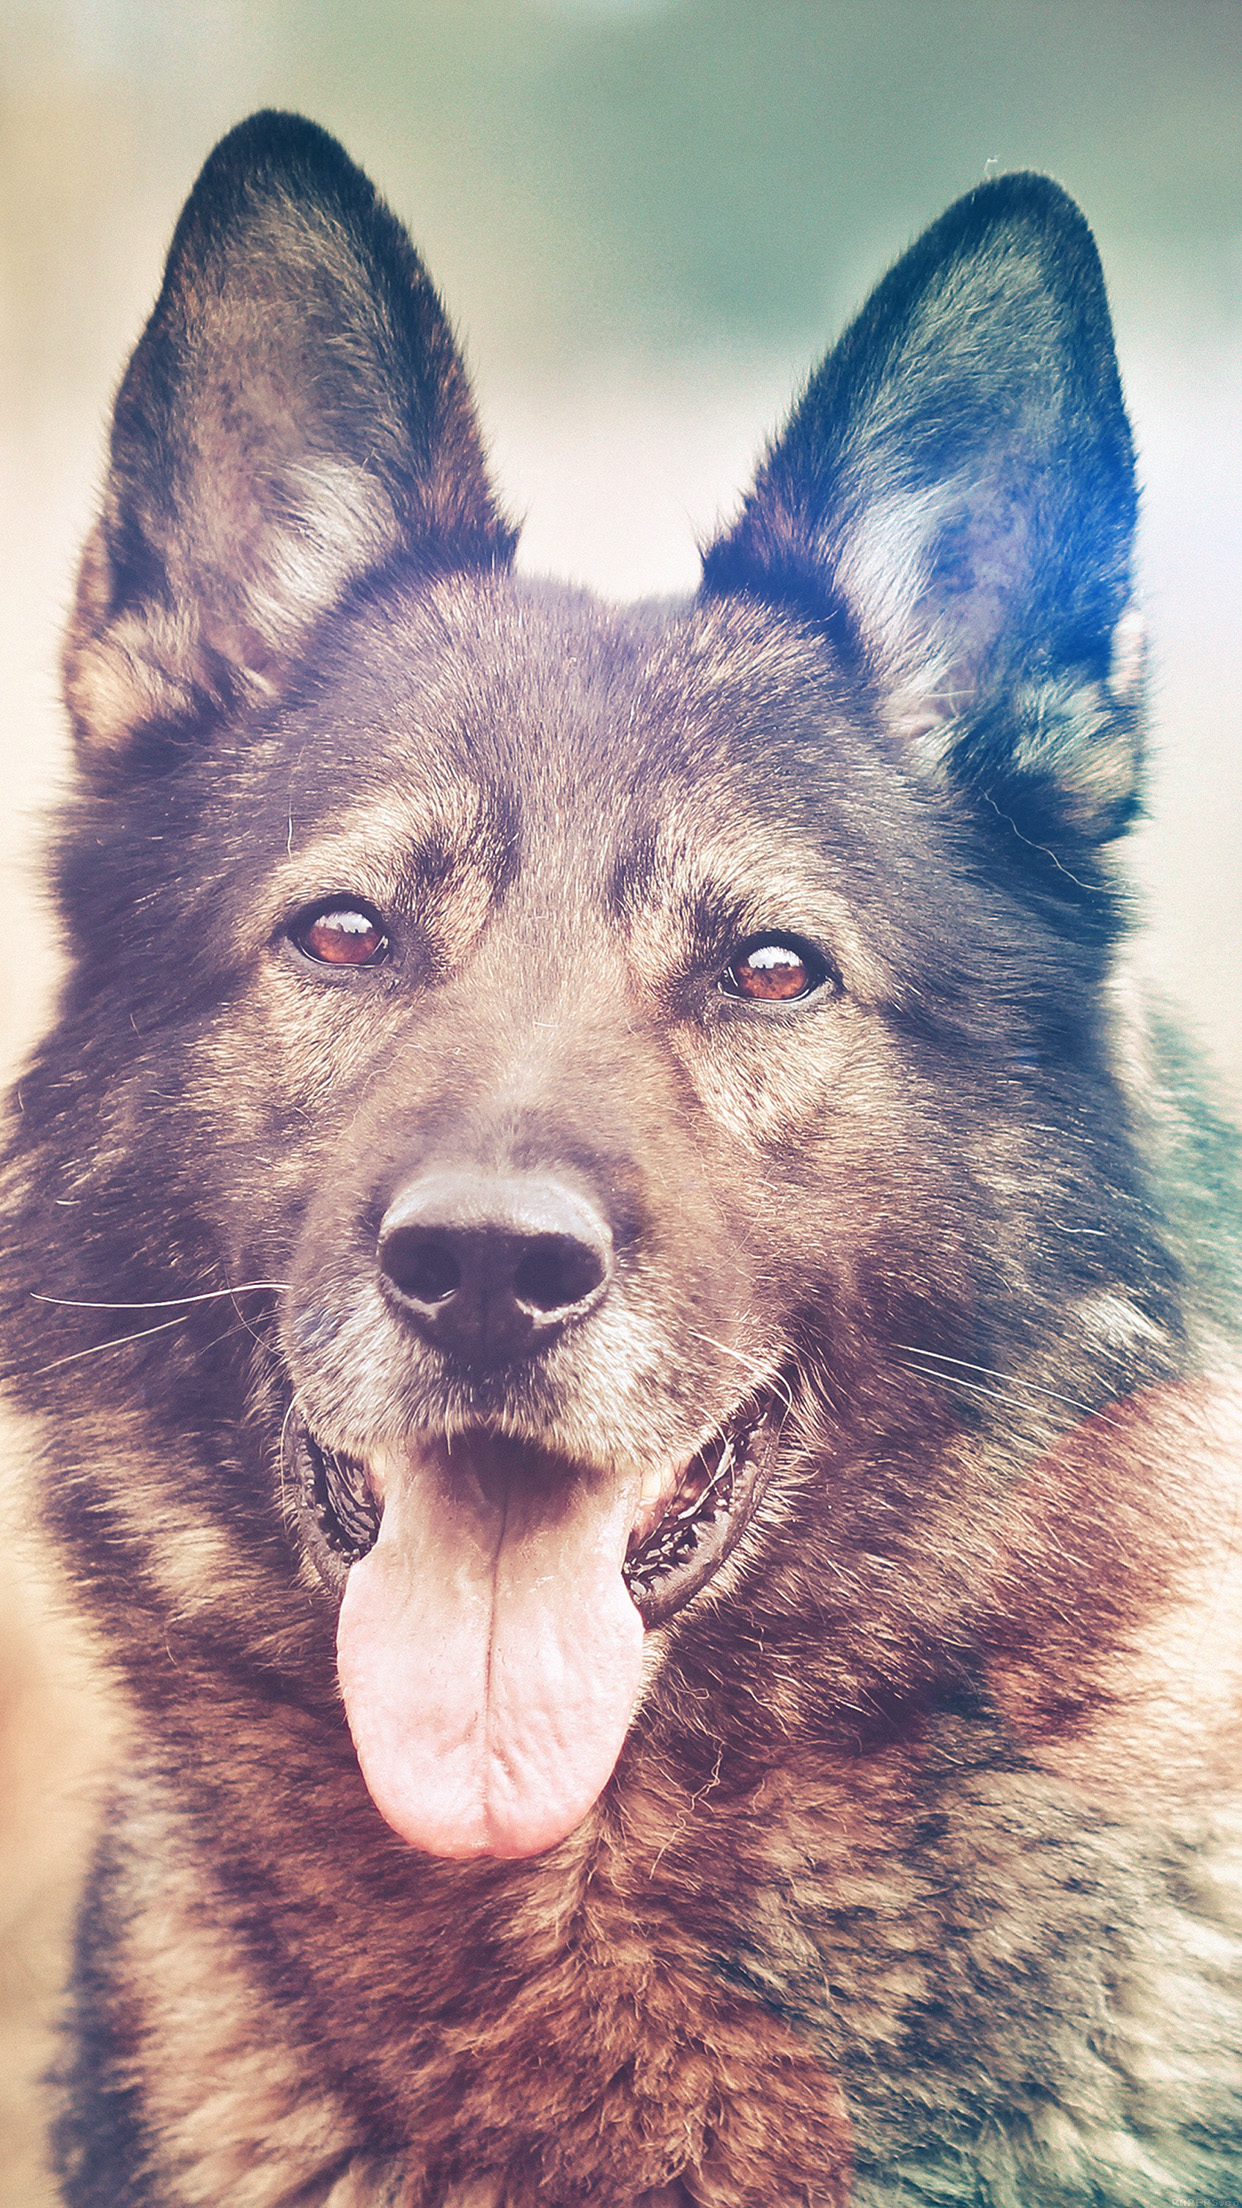 iphone7papers - mo06-my-shepherds-dog-flare-smile-animal-nature